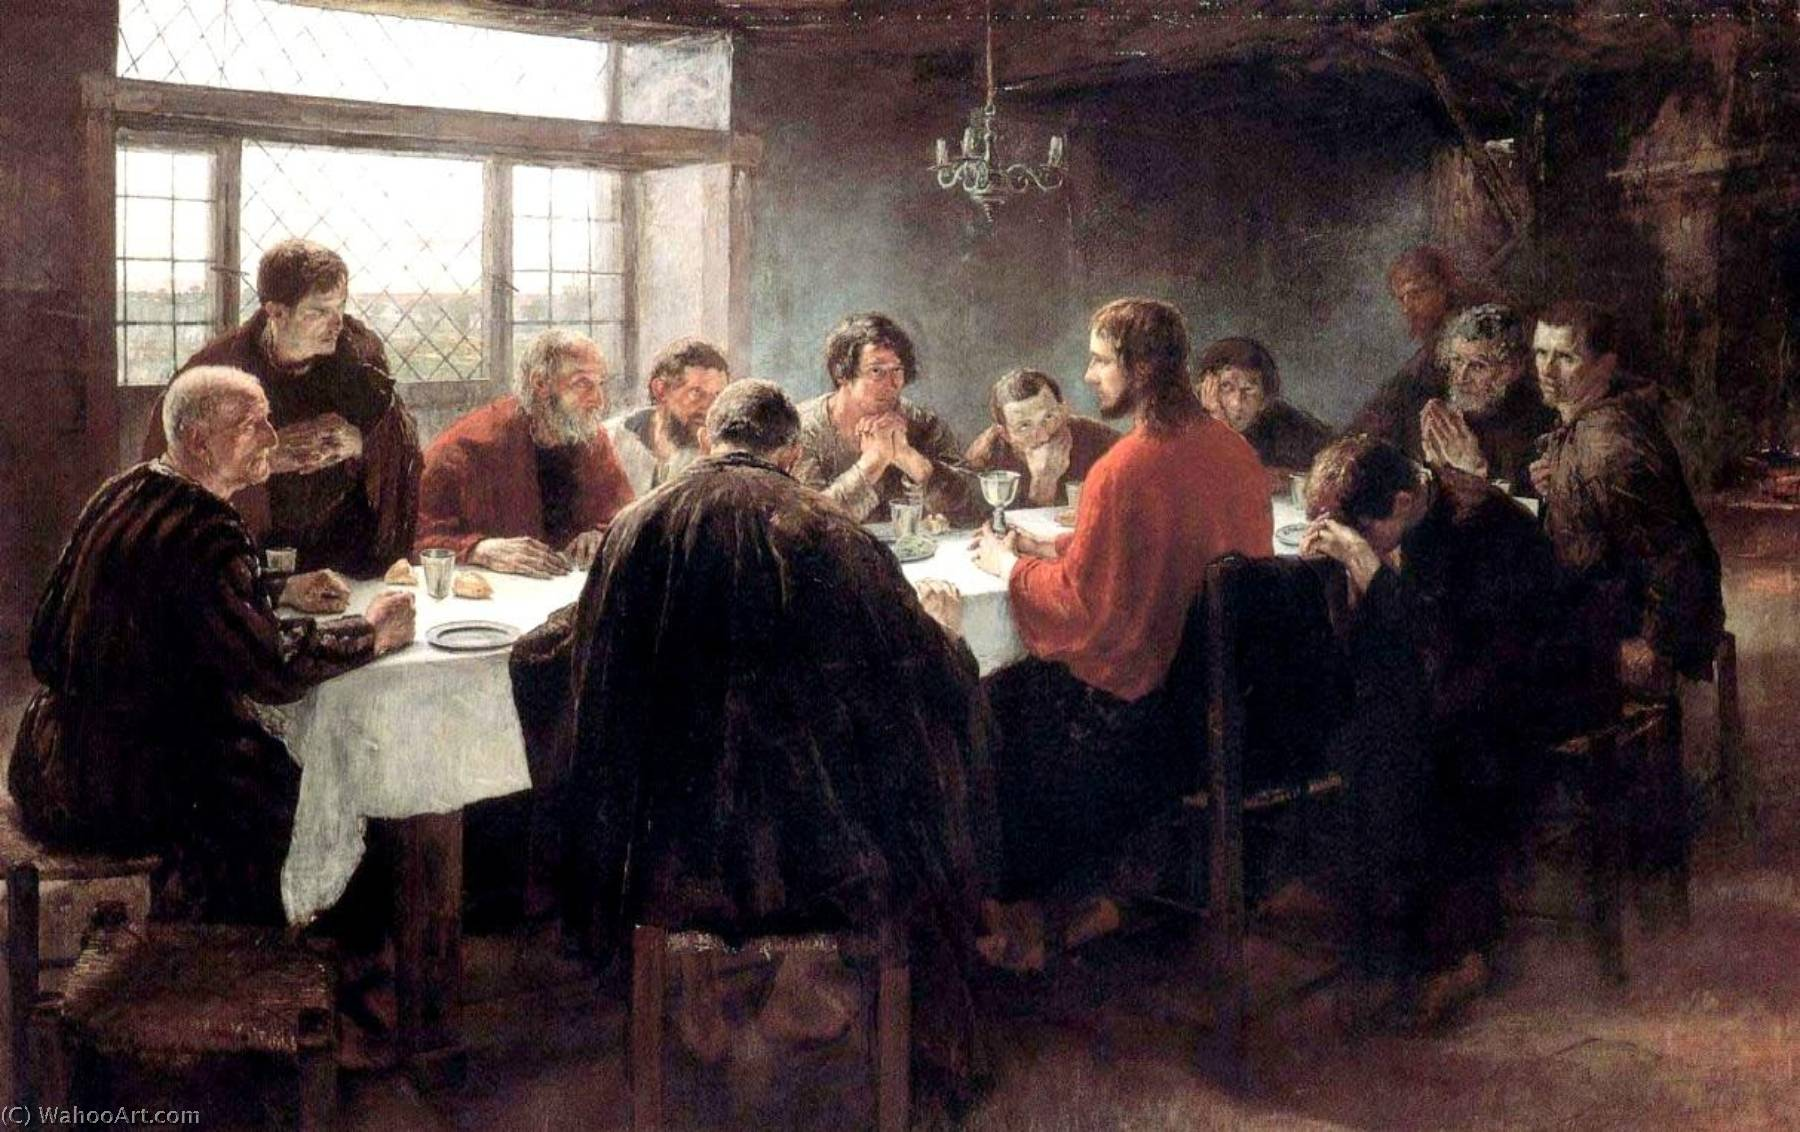 The Last Supper, Oil On Canvas by Fritz Von Uhde (1848-1911)